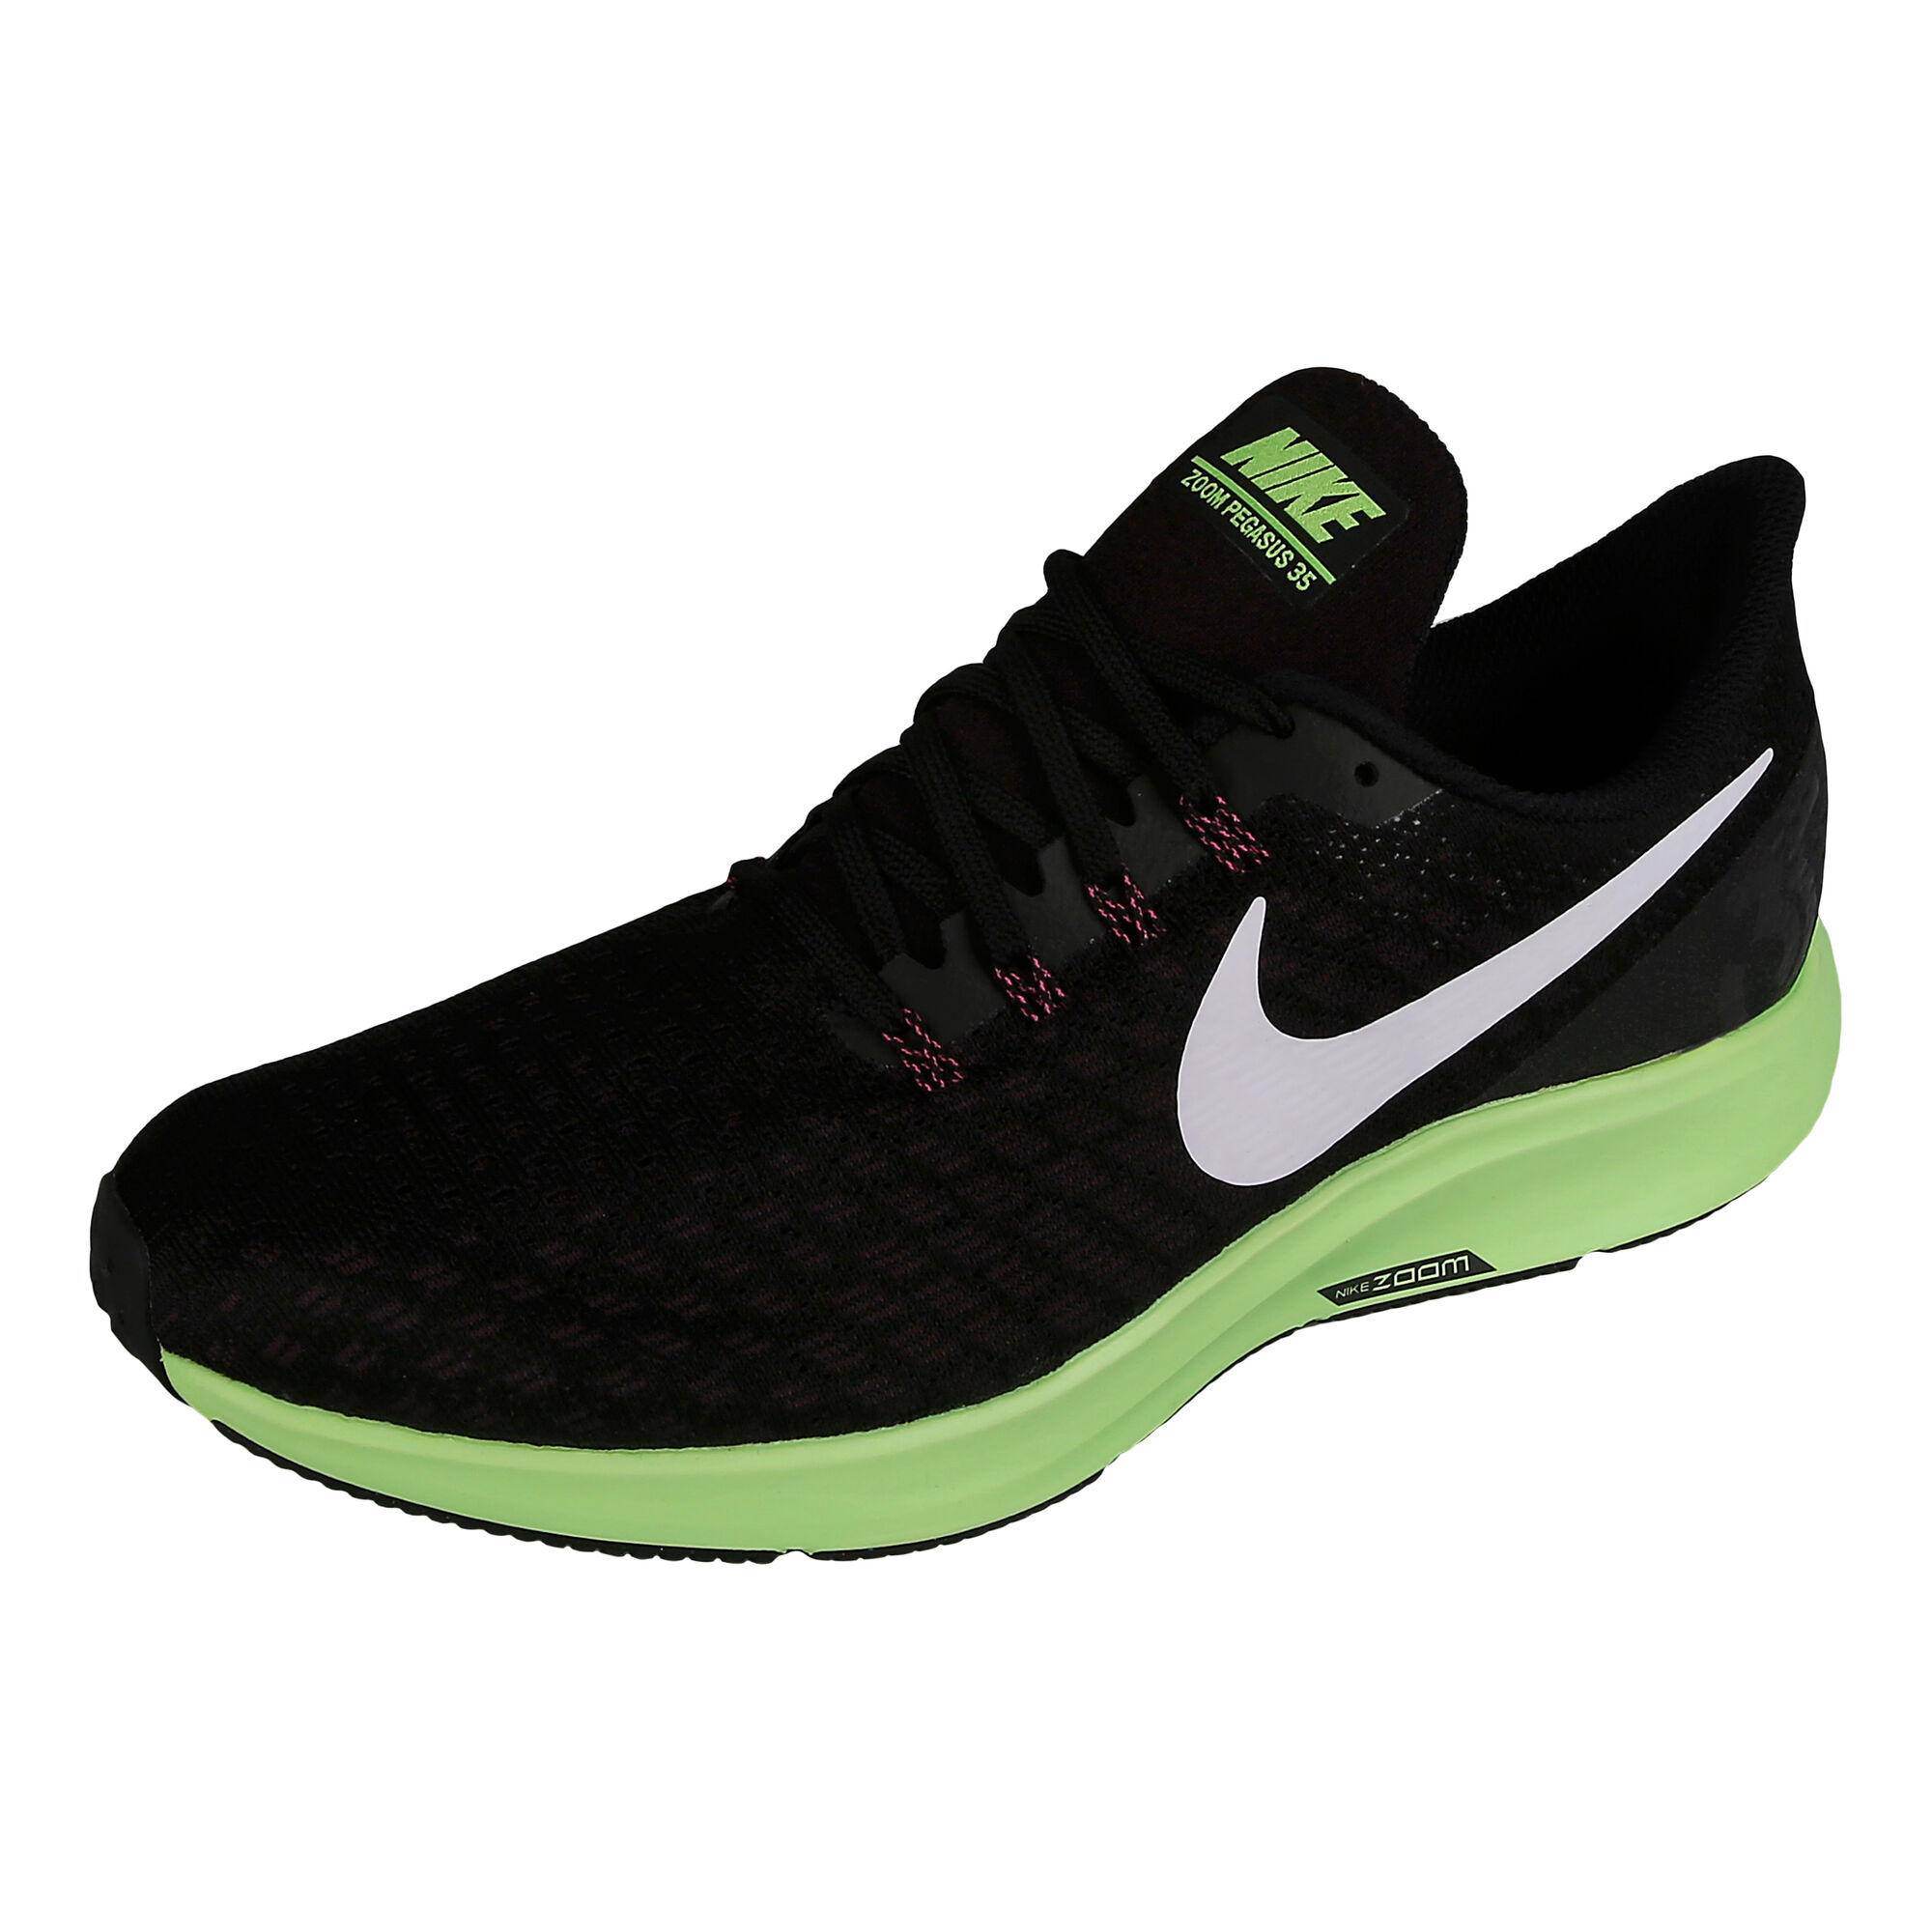 premium selection 432fb 324f6 buy Nike Air Zoom Pegasus 35 Neutral Running Shoe Men ...